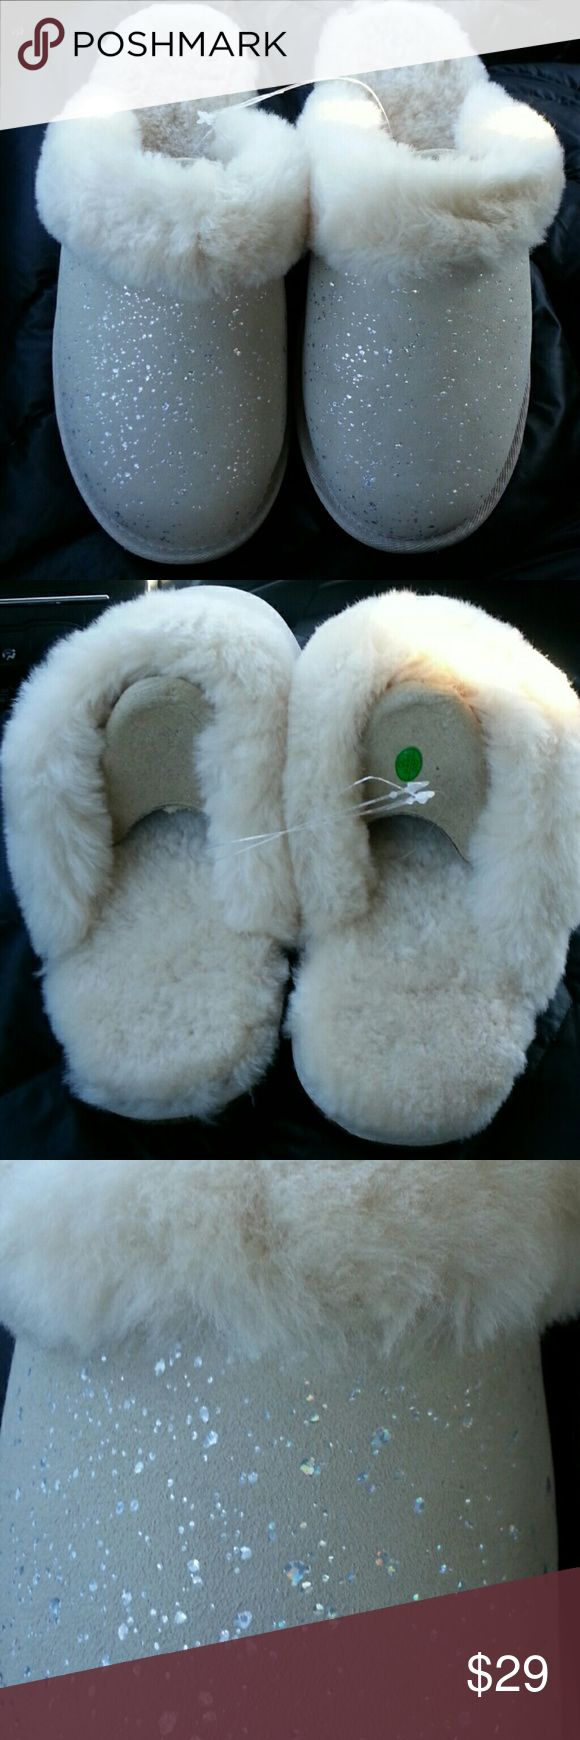 Sheepskin Slippers 100 percent Australian Sheepskin sparkle scuff slippers.  New, cream color, comes with box. Members Mark Shoes Slippers